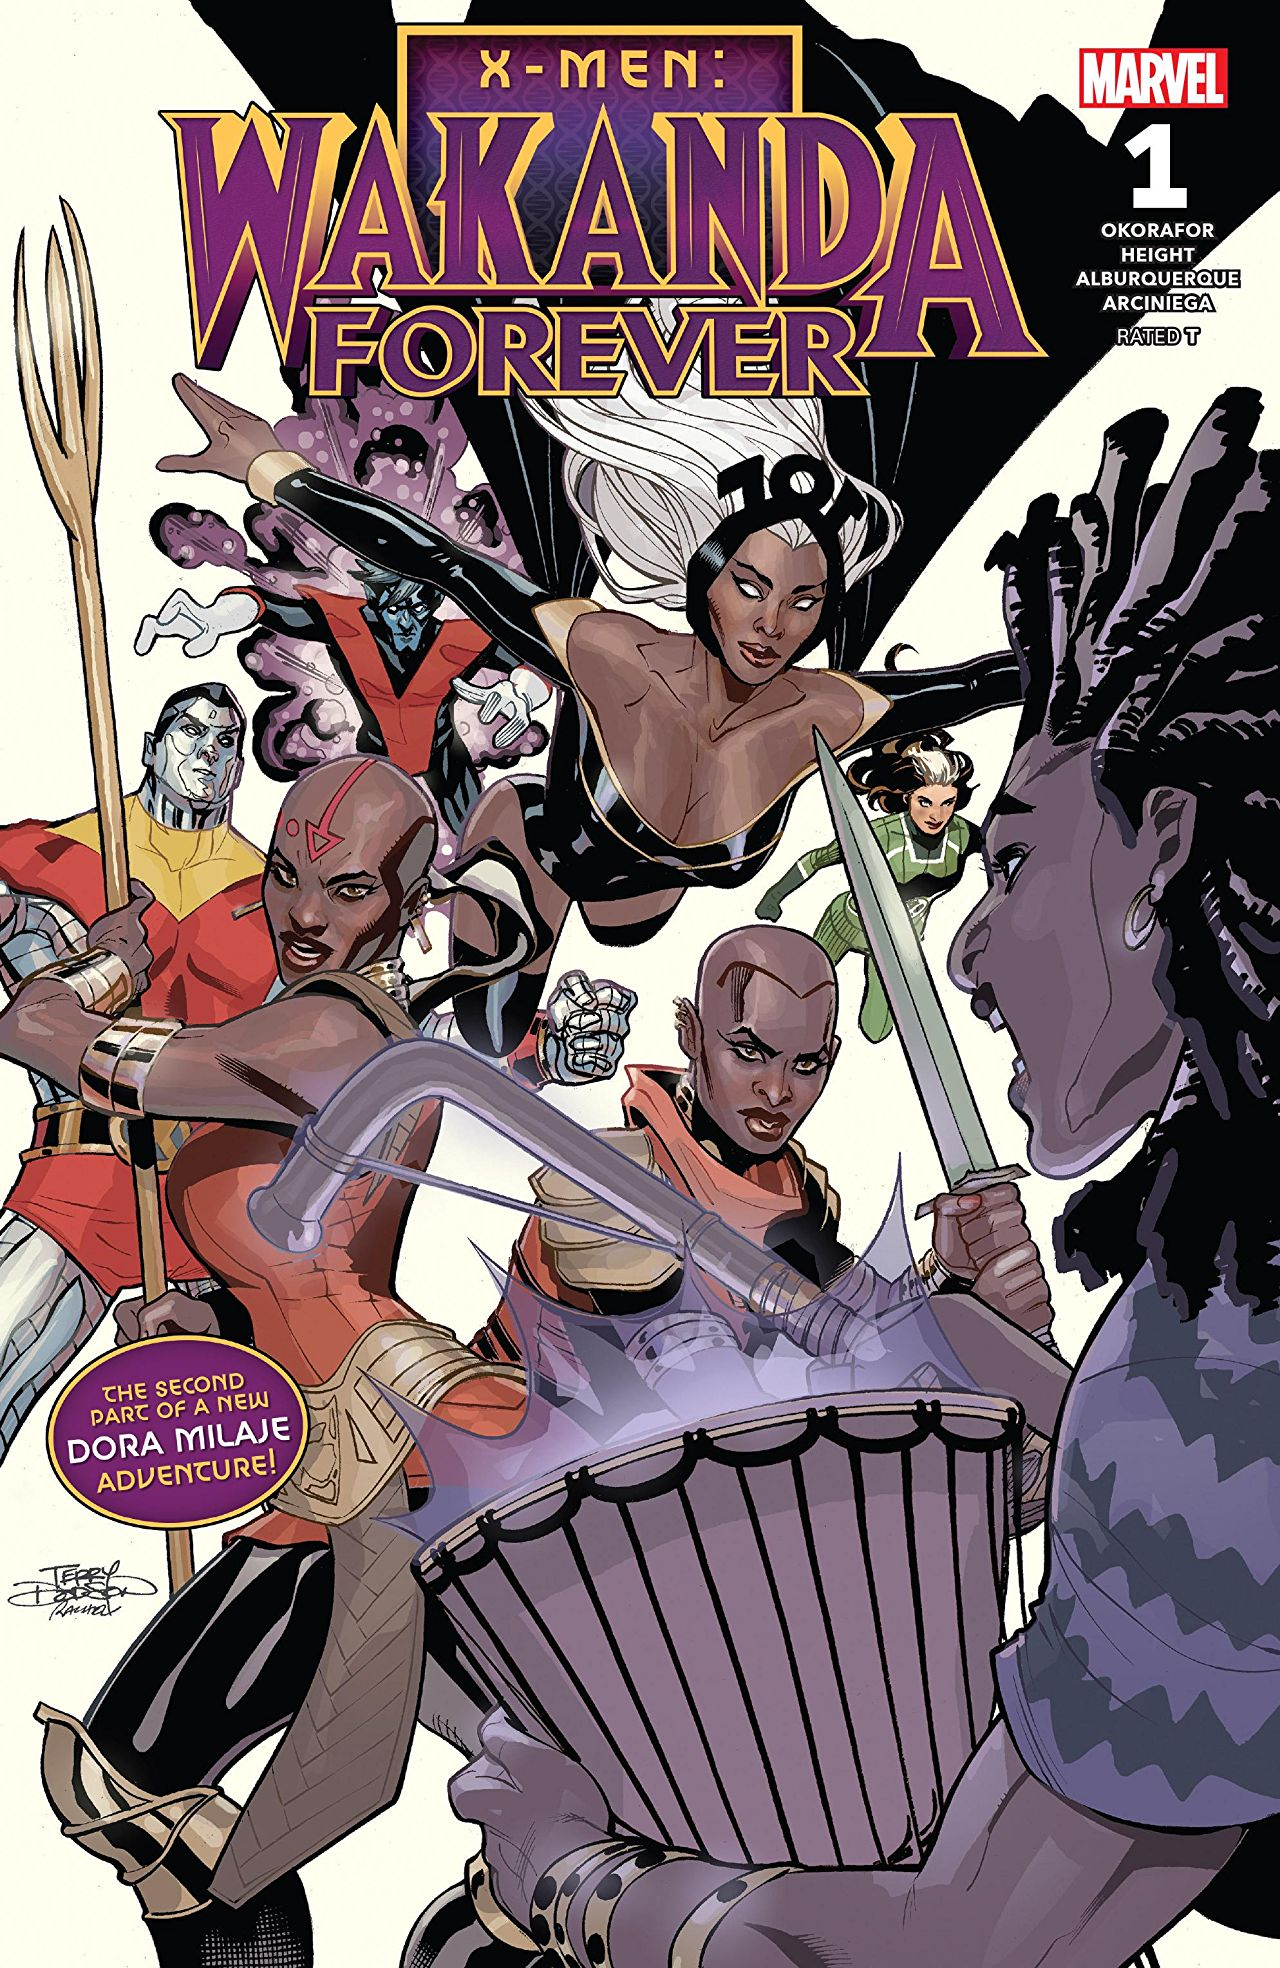 Exclusive Preview: X-MEN: WAKANDA FOREVER #1